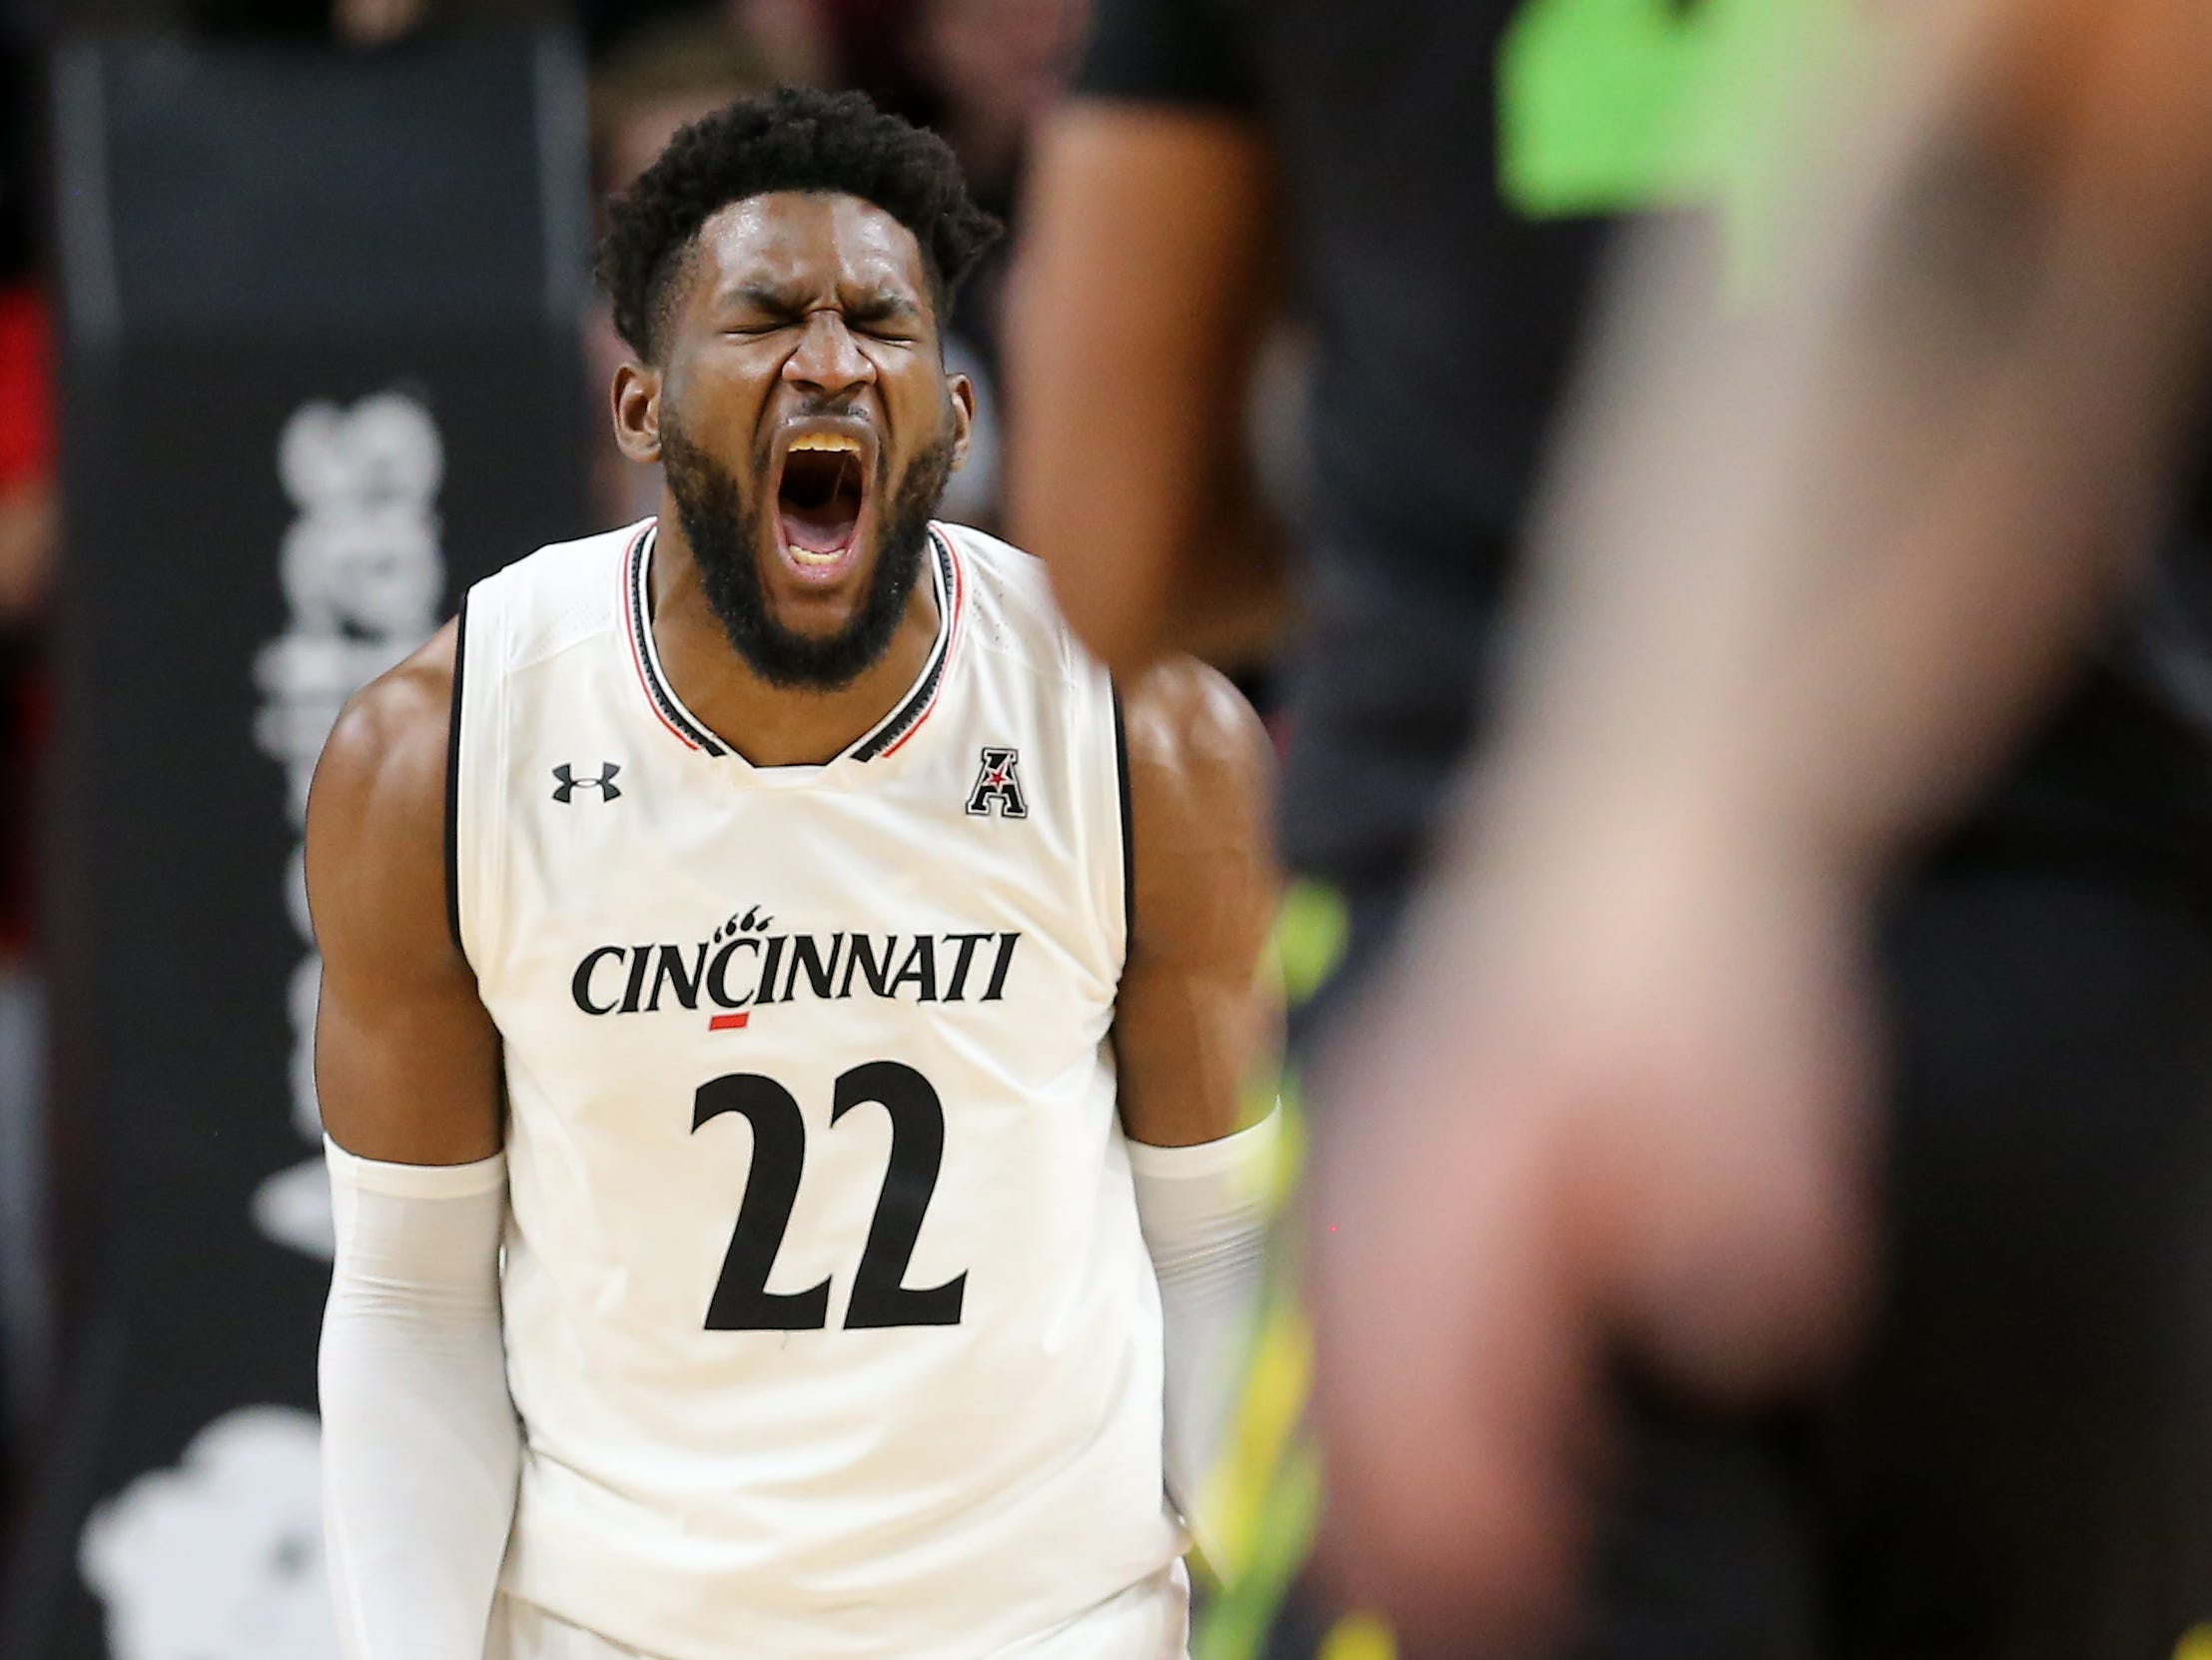 Cincinnati Bearcats forward Eliel Nsoseme (22) reacts after a made a basket in the first half of an NCAA college basketball game against the South Florida Bulls, Tuesday, Jan. 15, 2019, at Fifth Third Arena in Cincinnati.